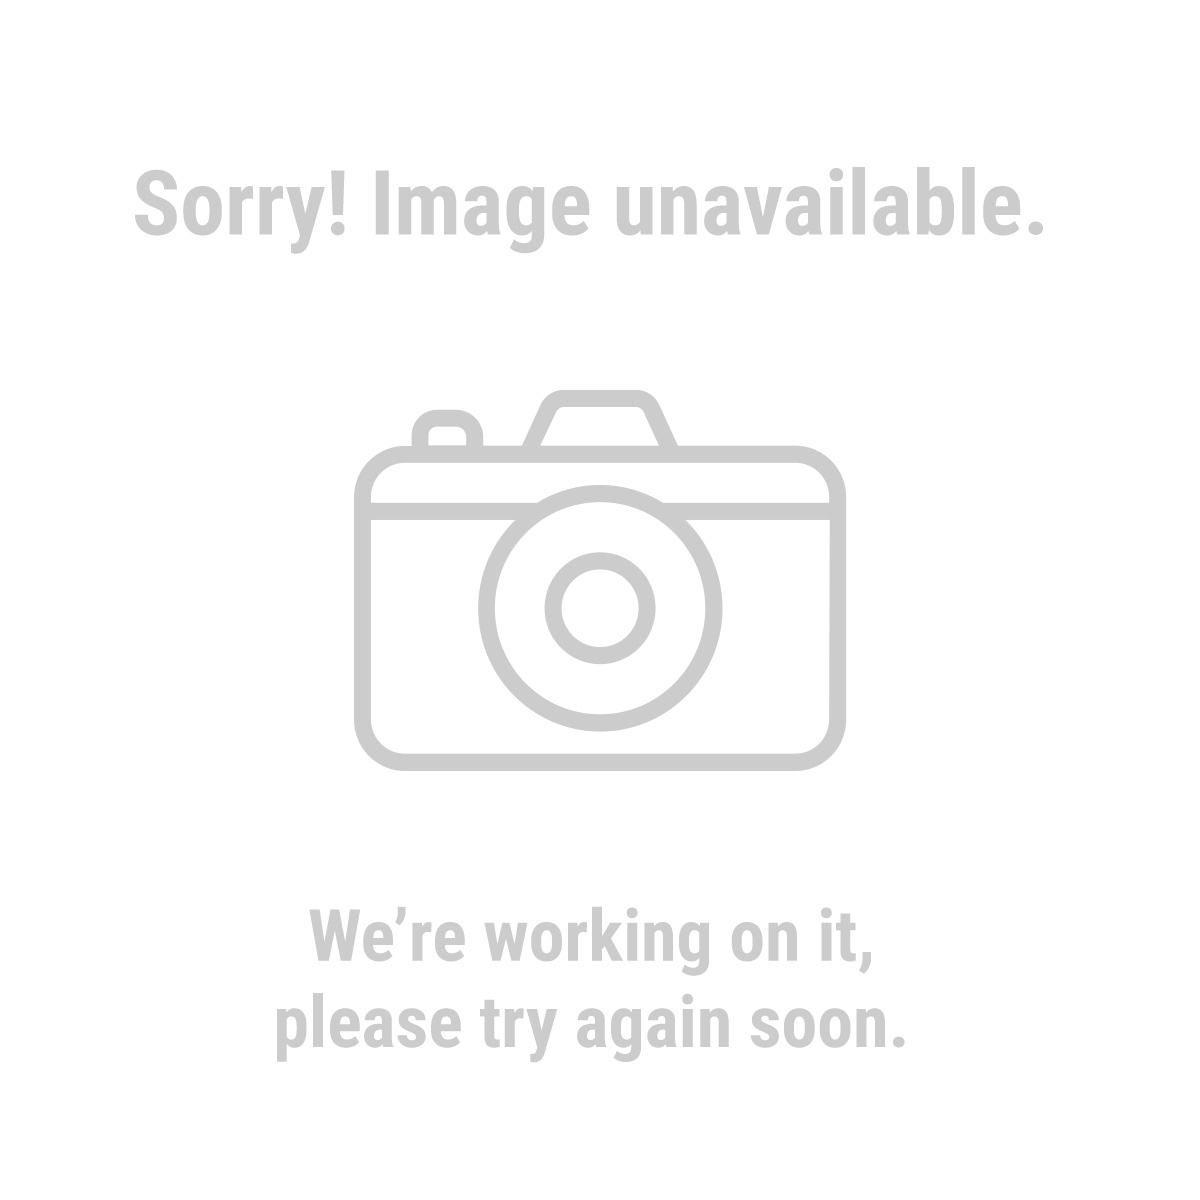 Cast iron stove for sale - Lookup BeforeBuying